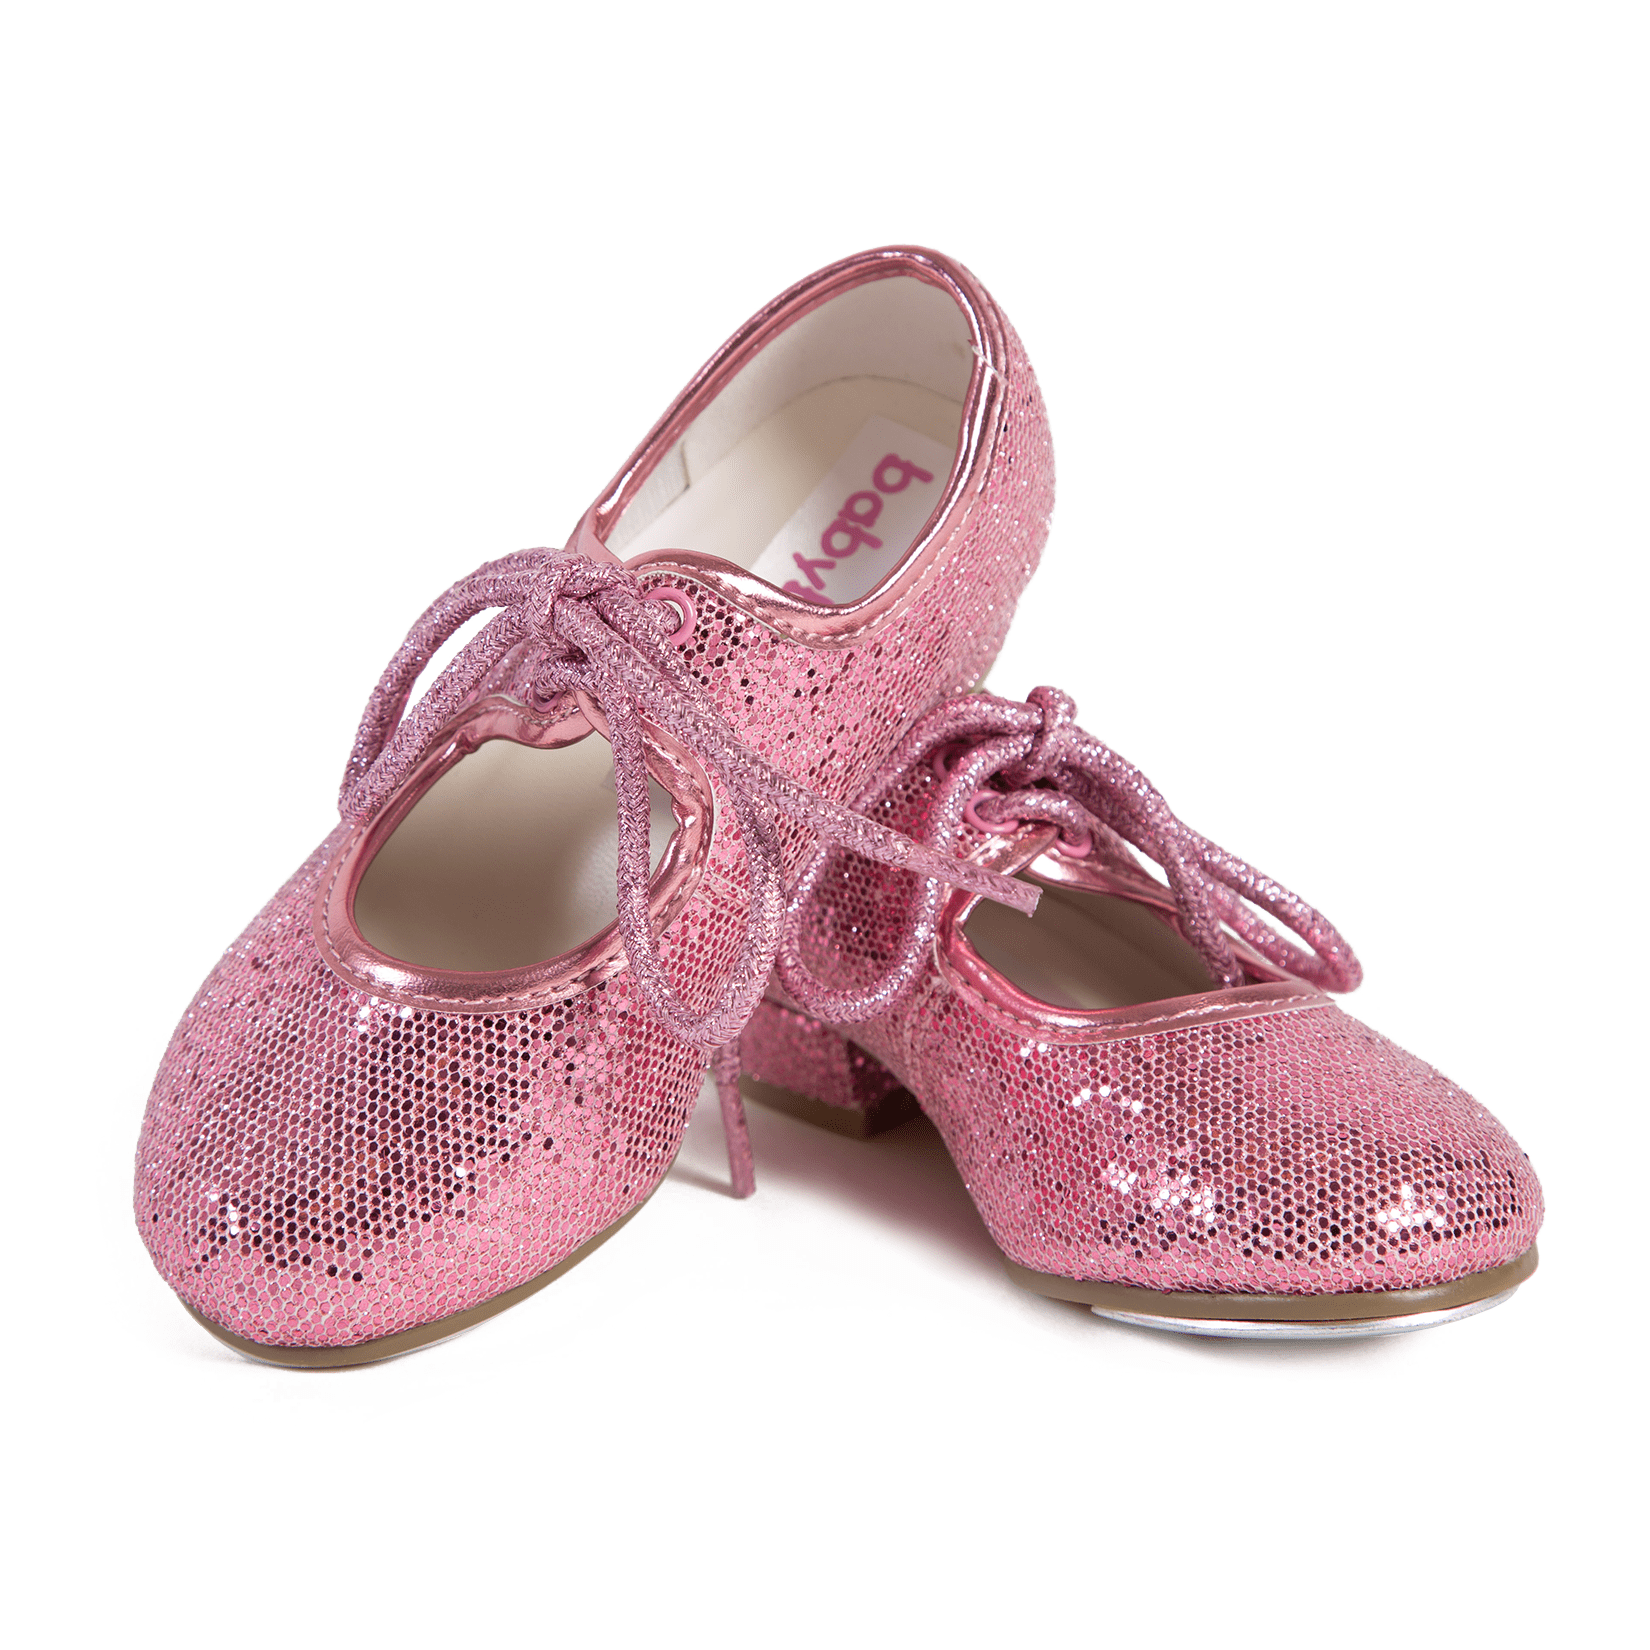 Sparkly Pink Tap Shoes Babyballet